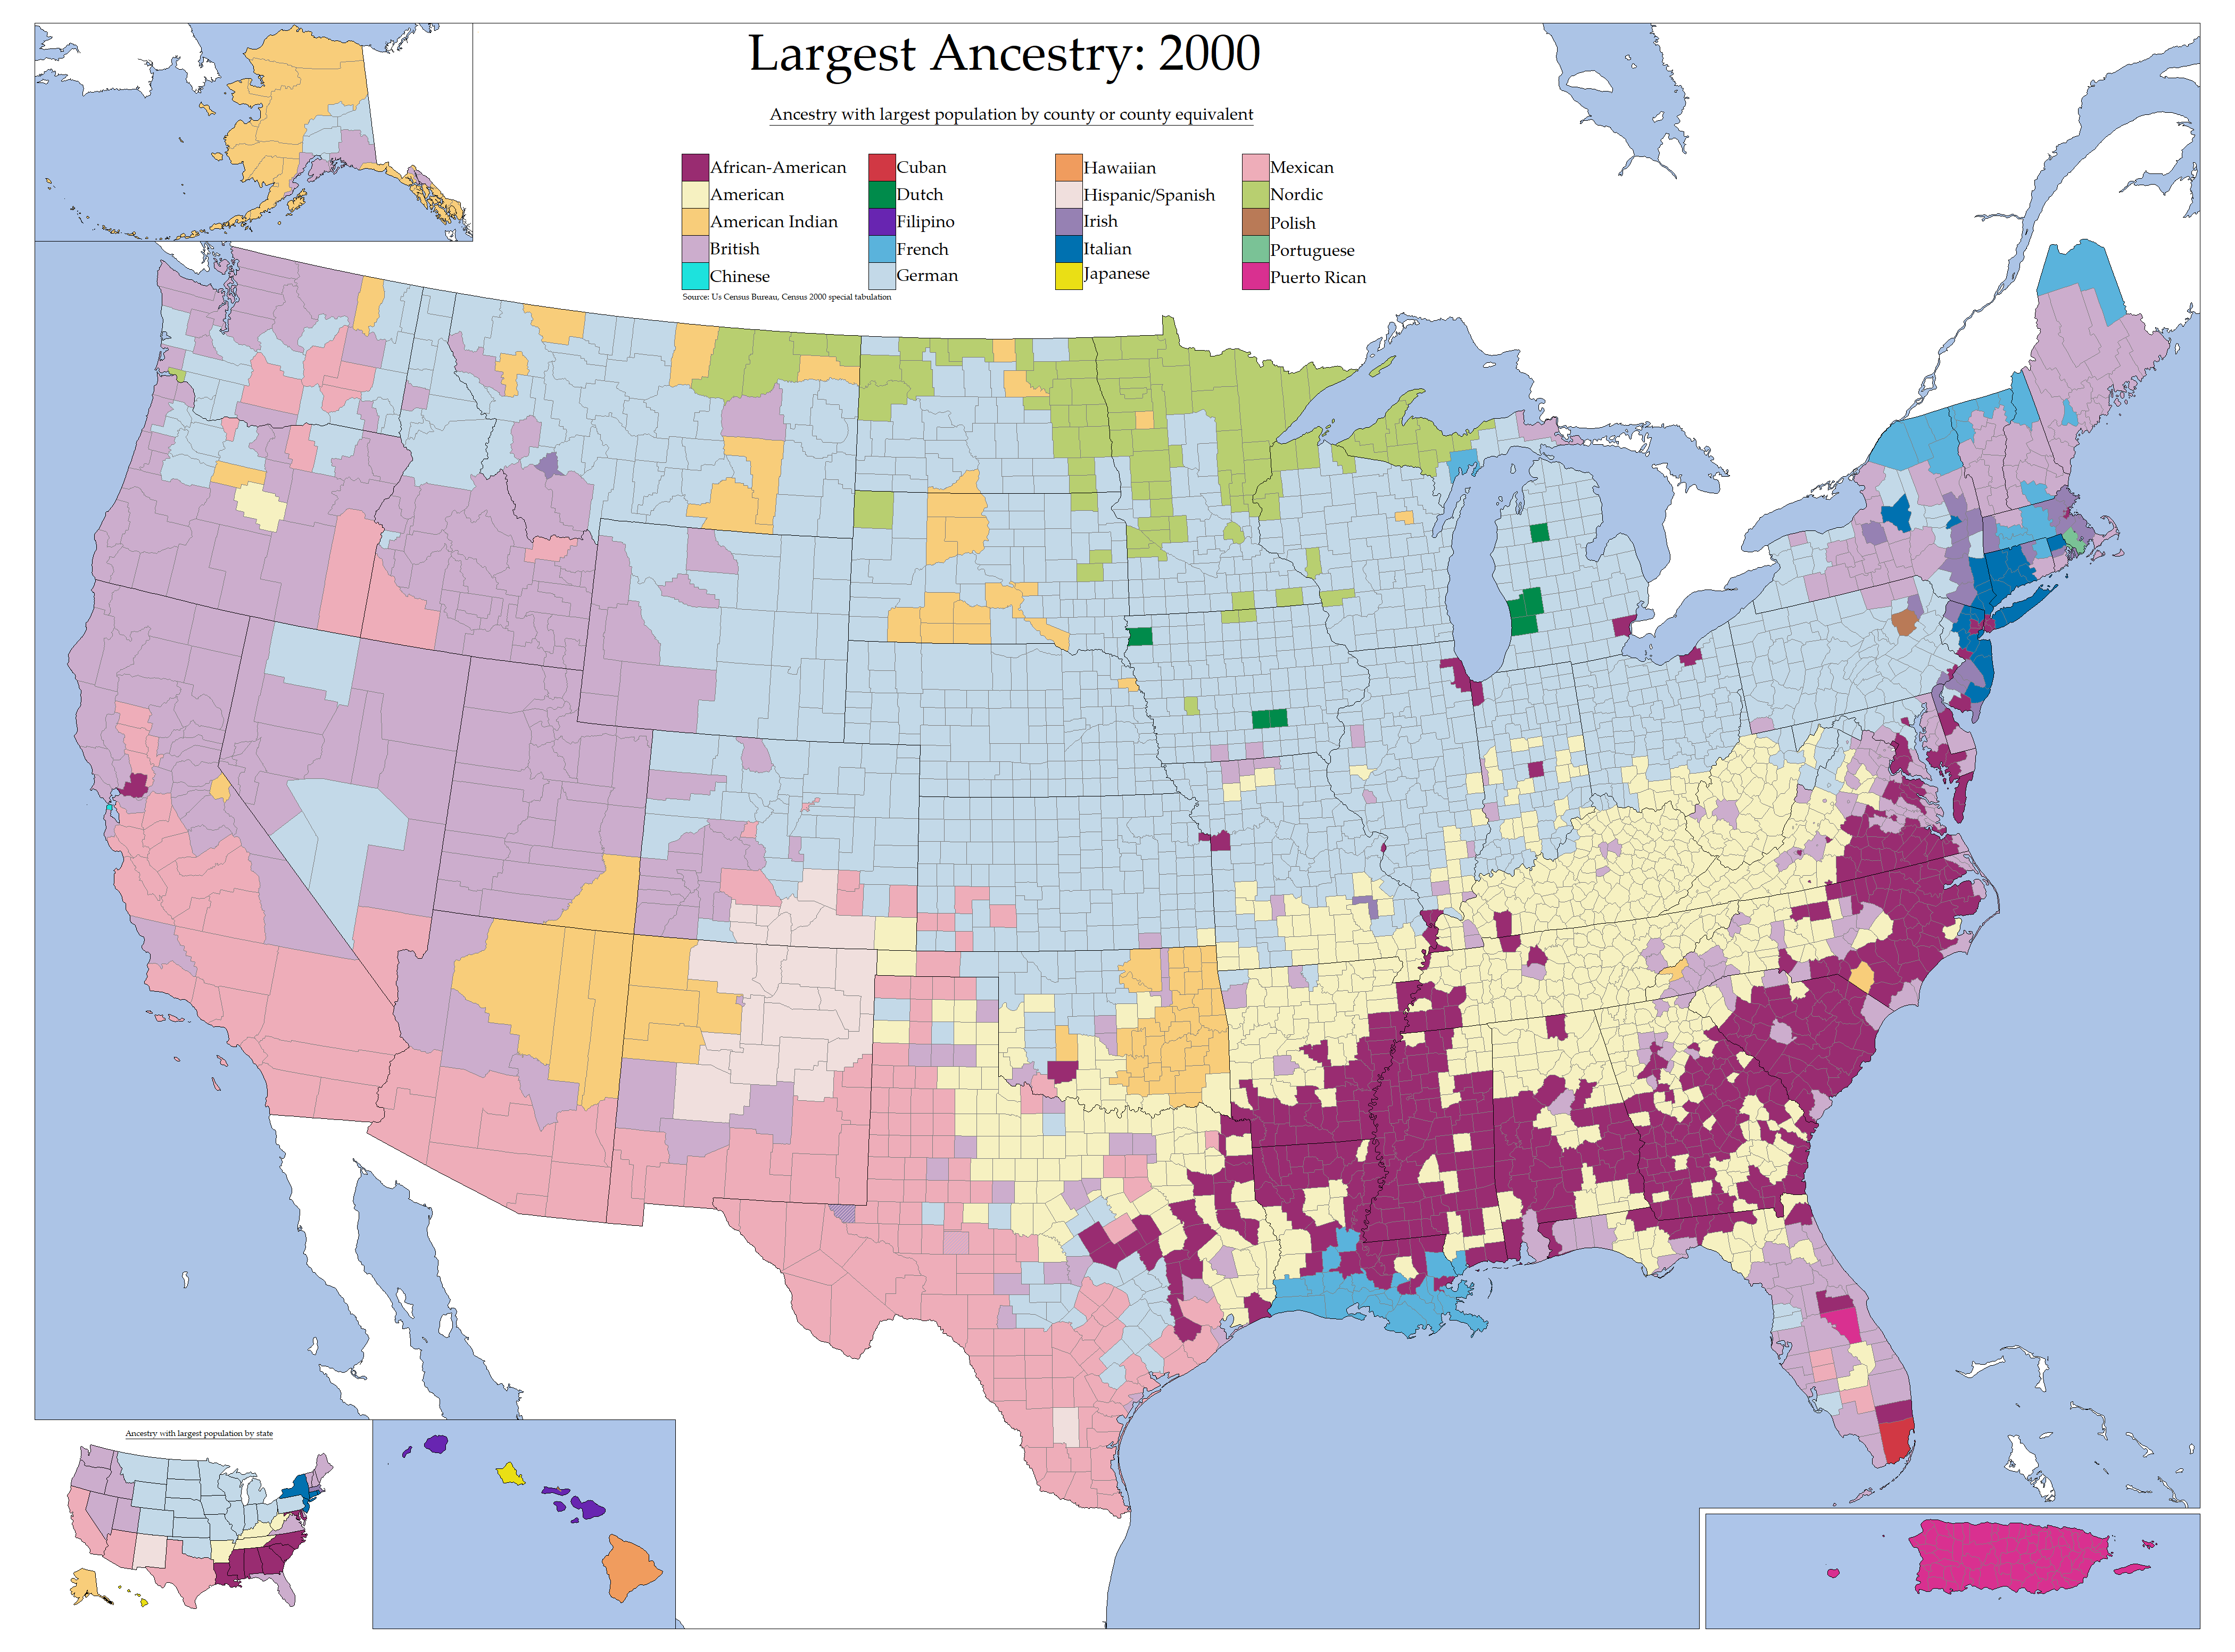 Largest Ancestry In The United States By County In